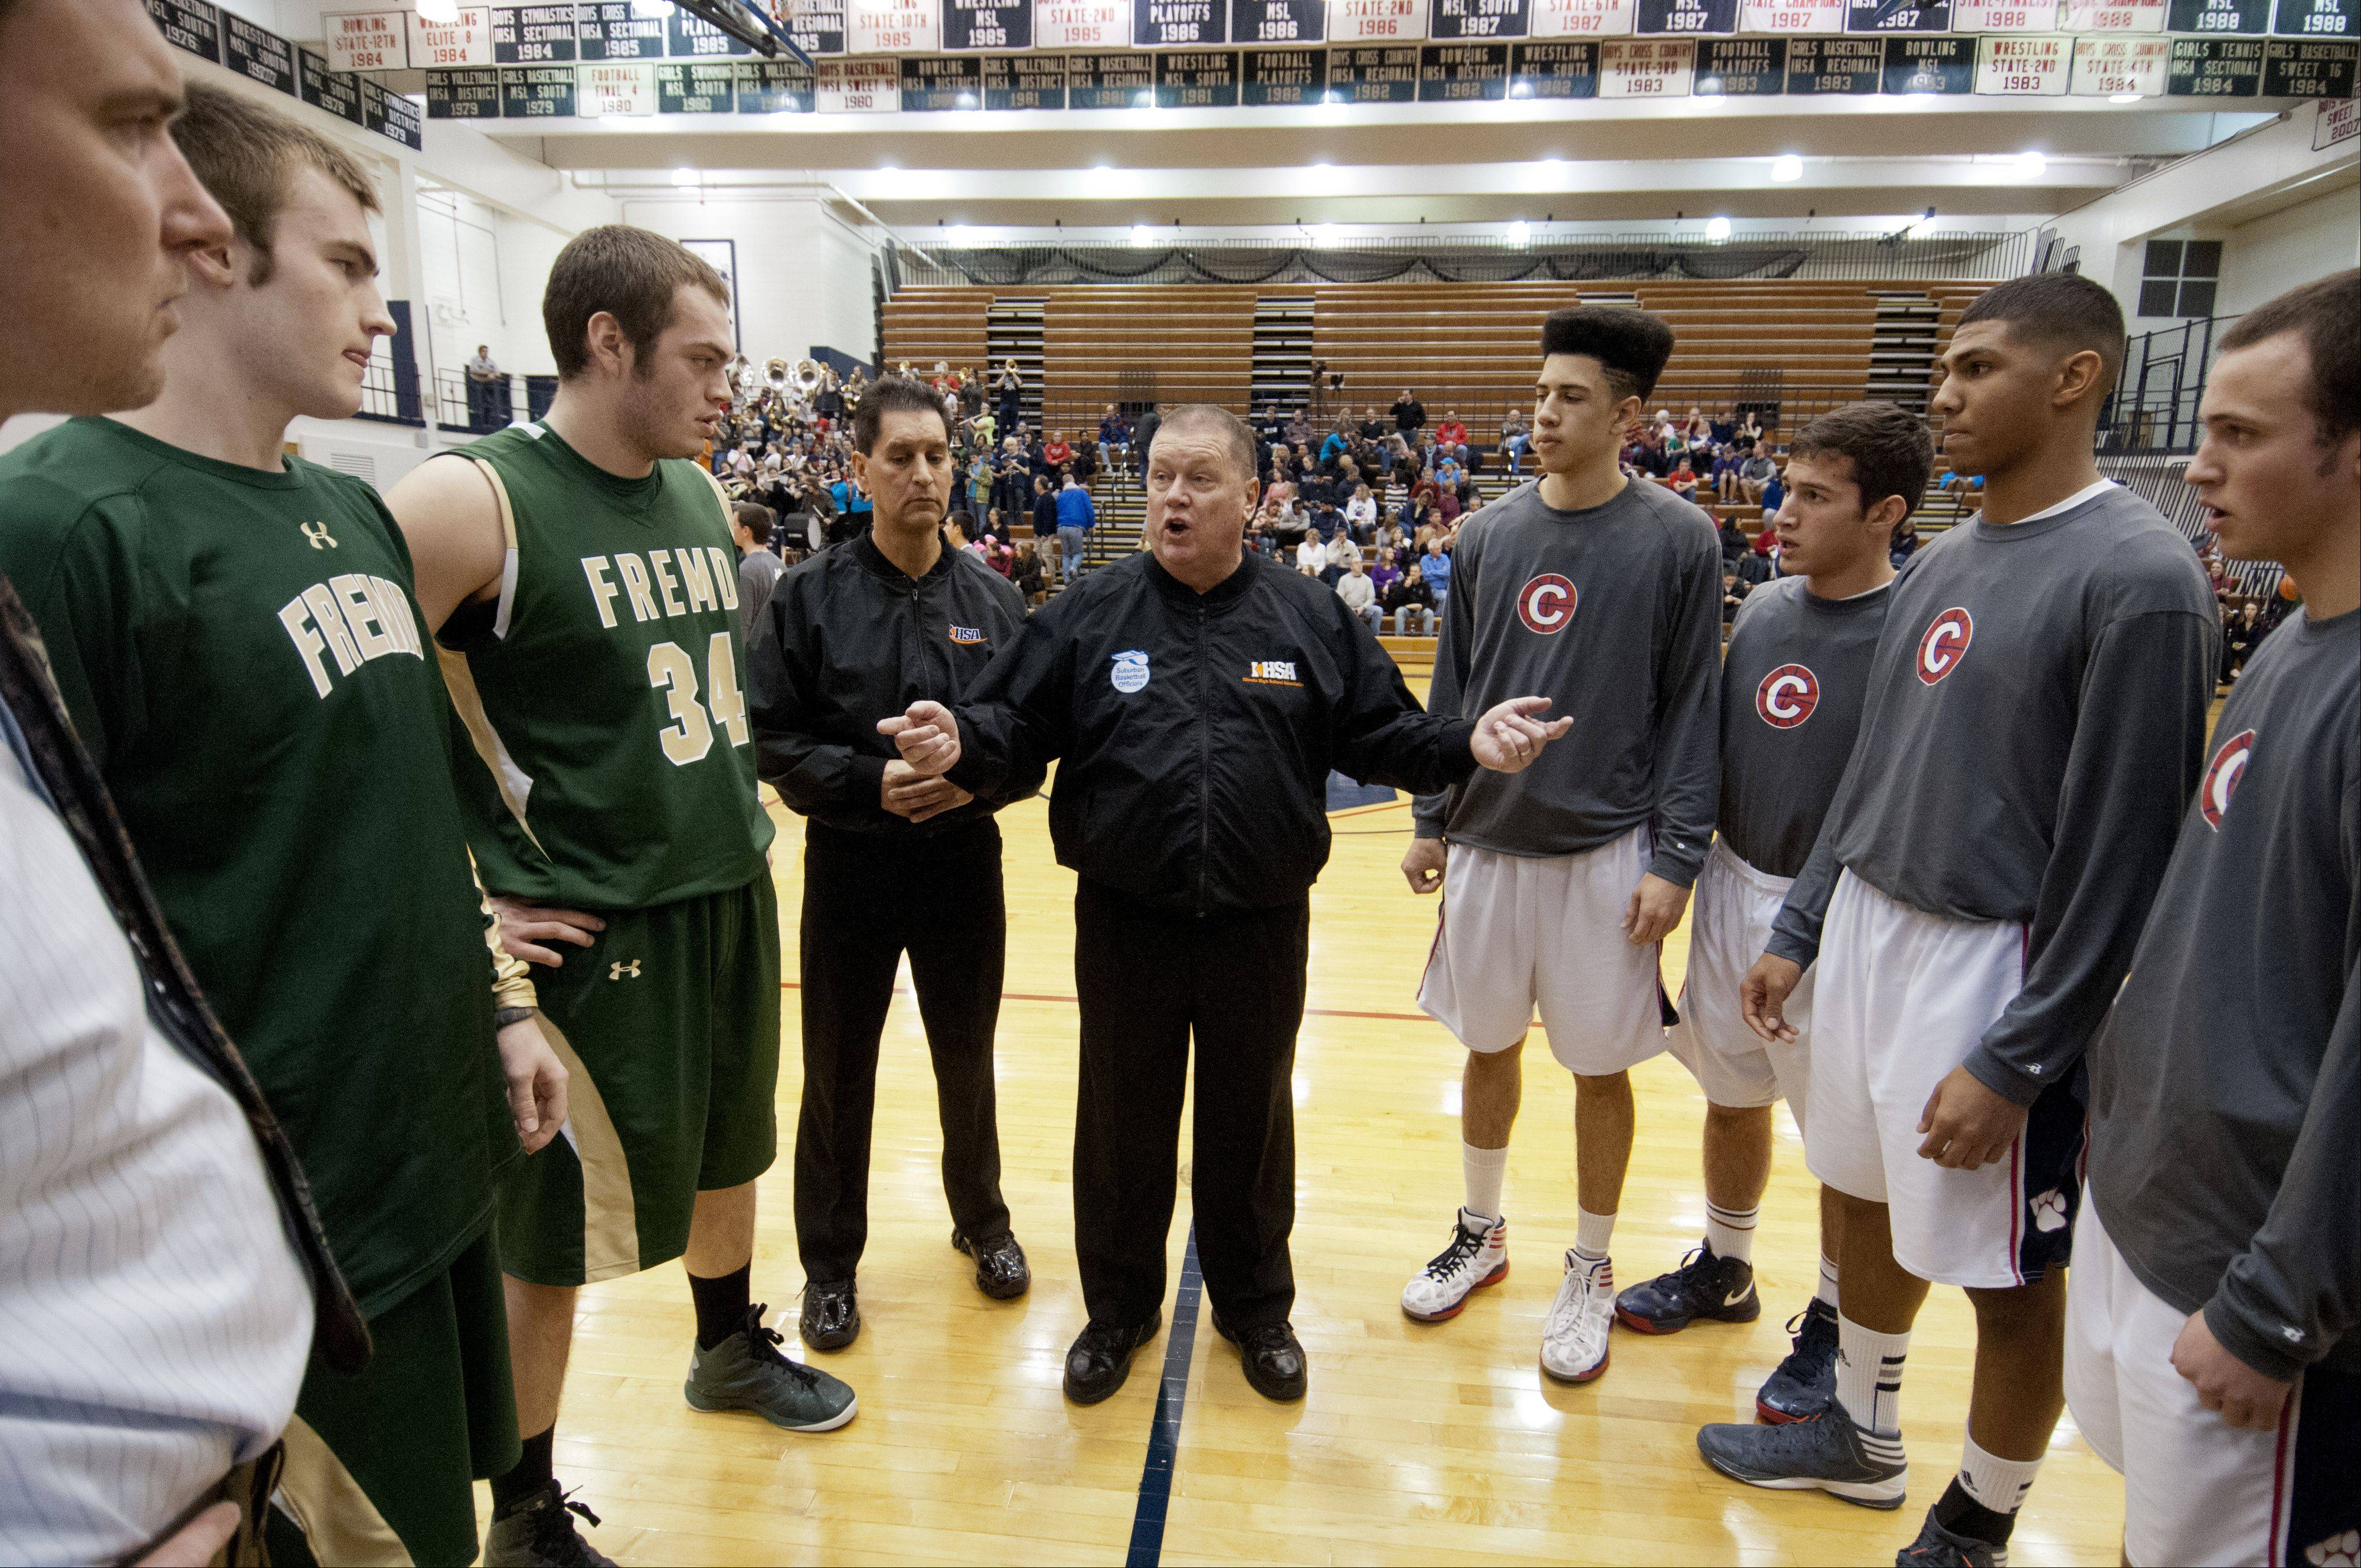 Bieterman talks to the team captains before a game between Fremd and Conant high schools.